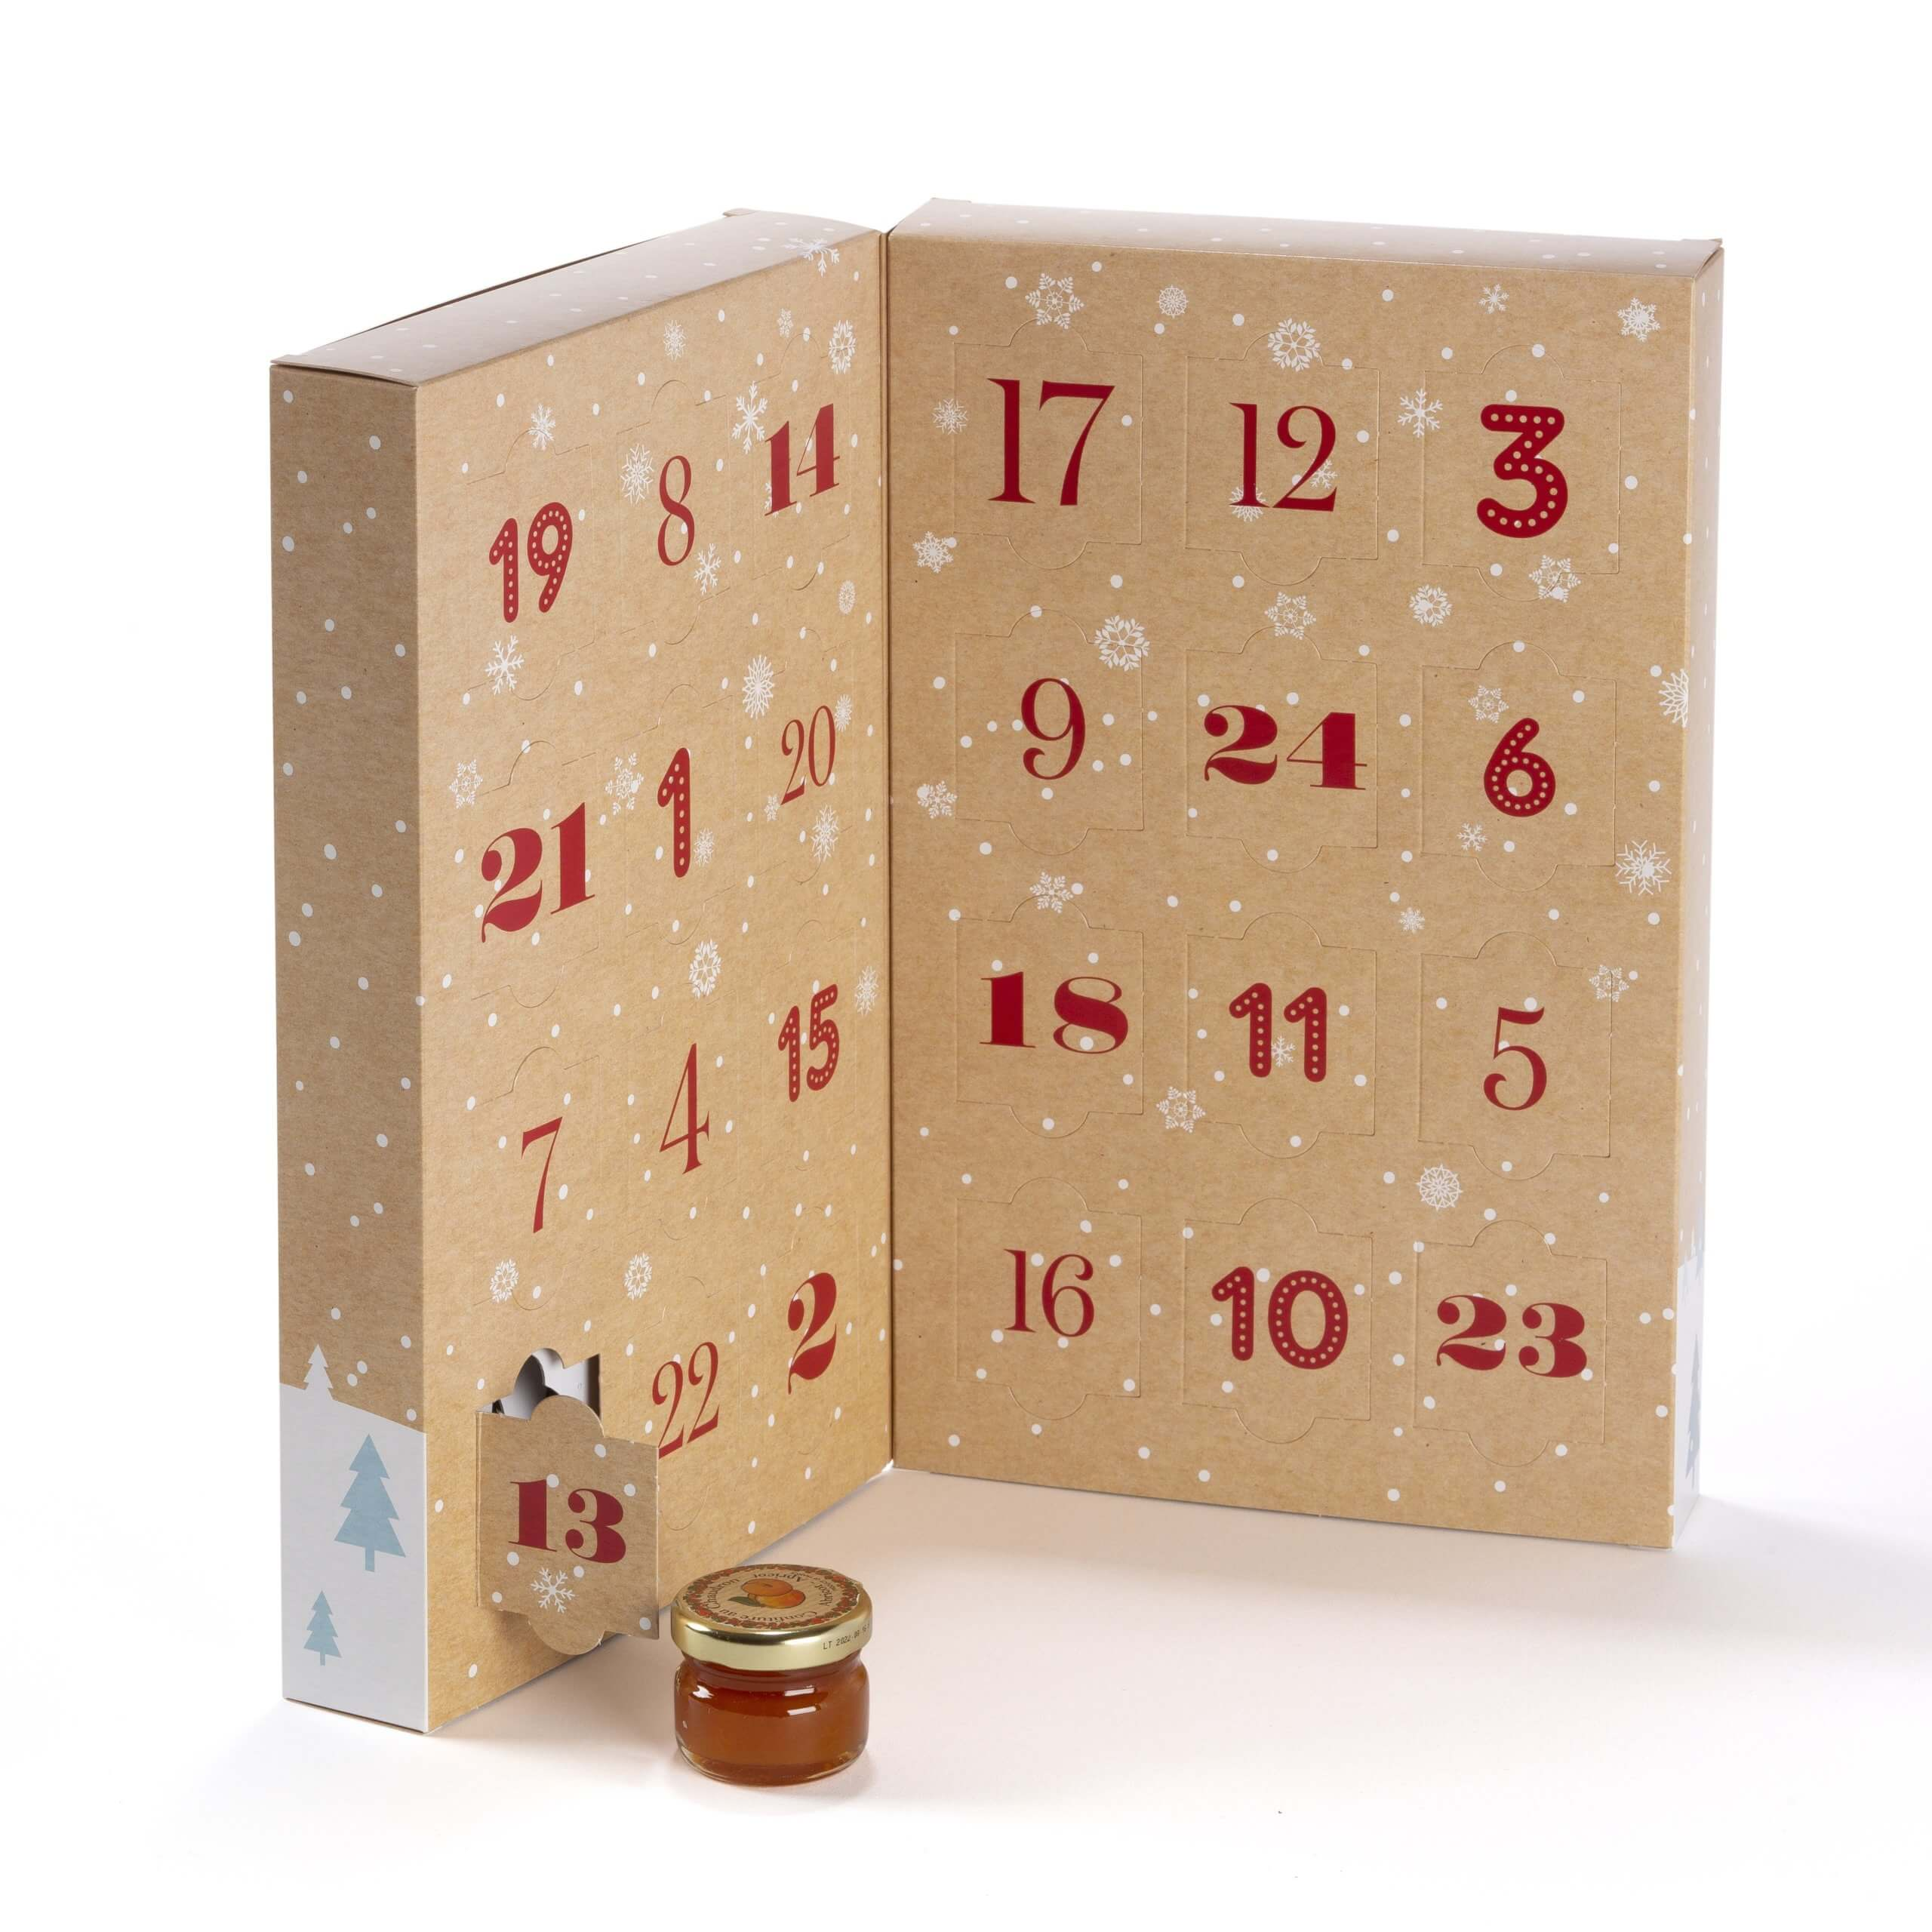 Avent calendar with 24 jam recipes by Andresy Confitures